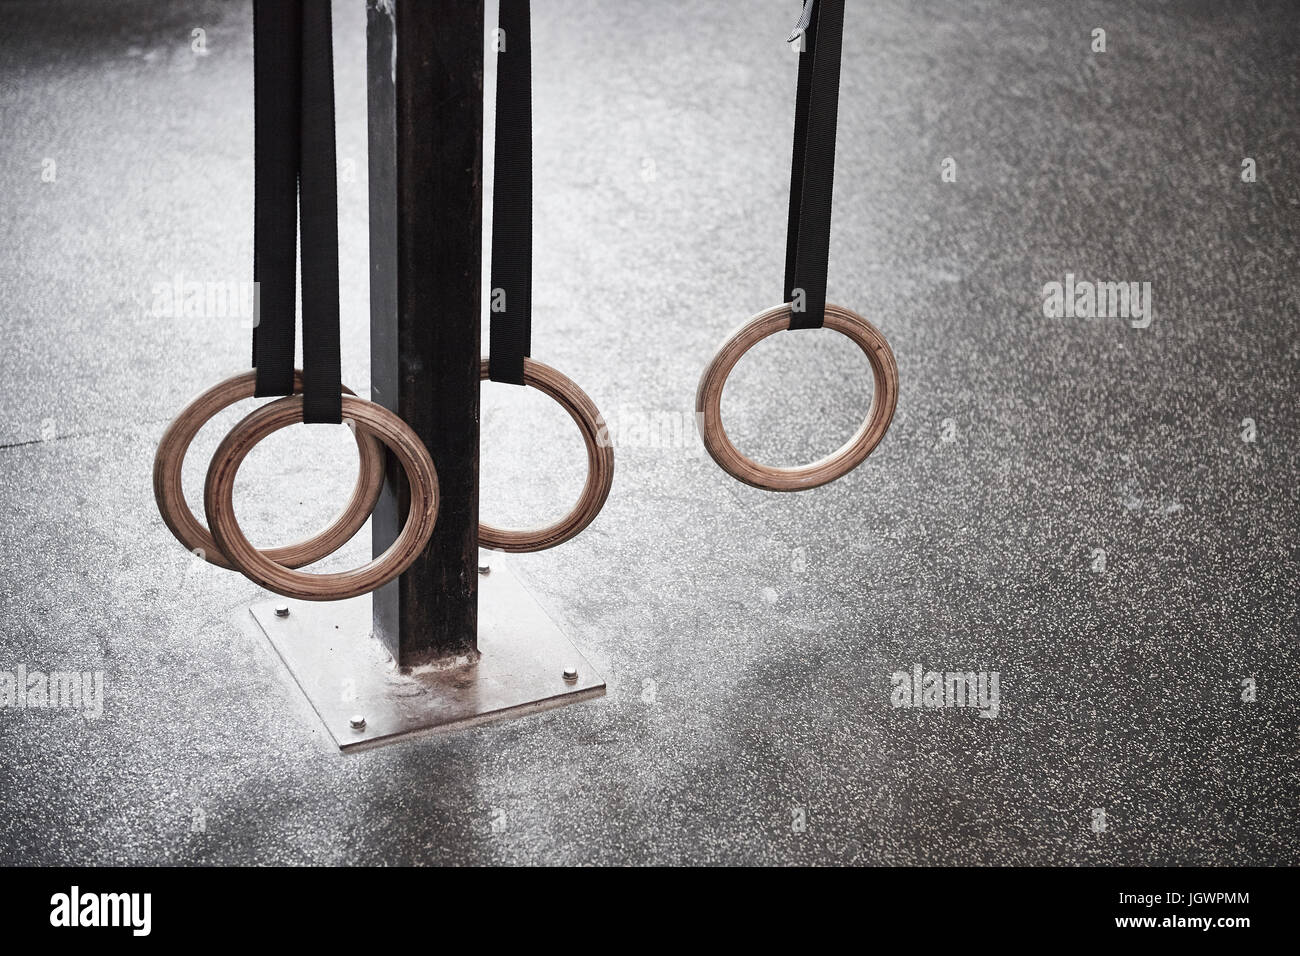 Gymnastic rings - Stock Image